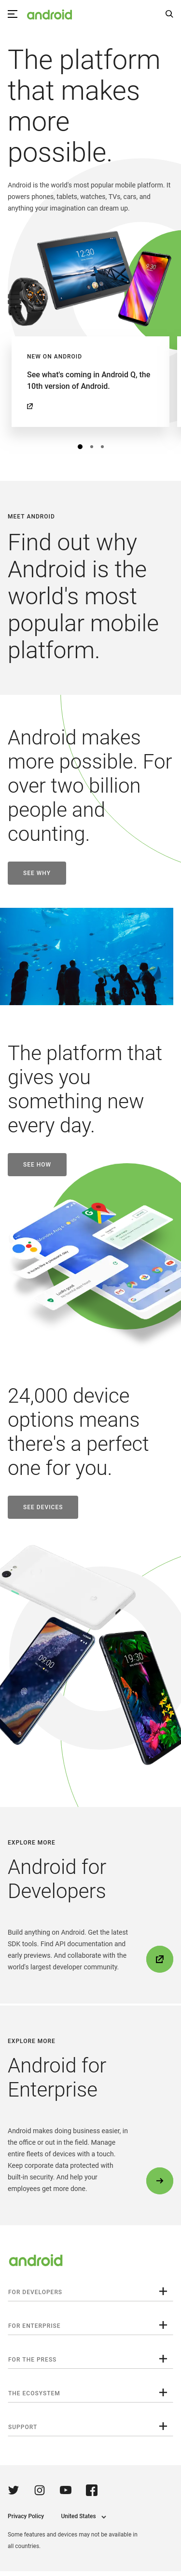 Example of Design for Internet & Telecom, Mobile & Wireless, Mobile Apps & Add-Ons, Mobile Landing Page by android.com | Mobile Landing Page Design